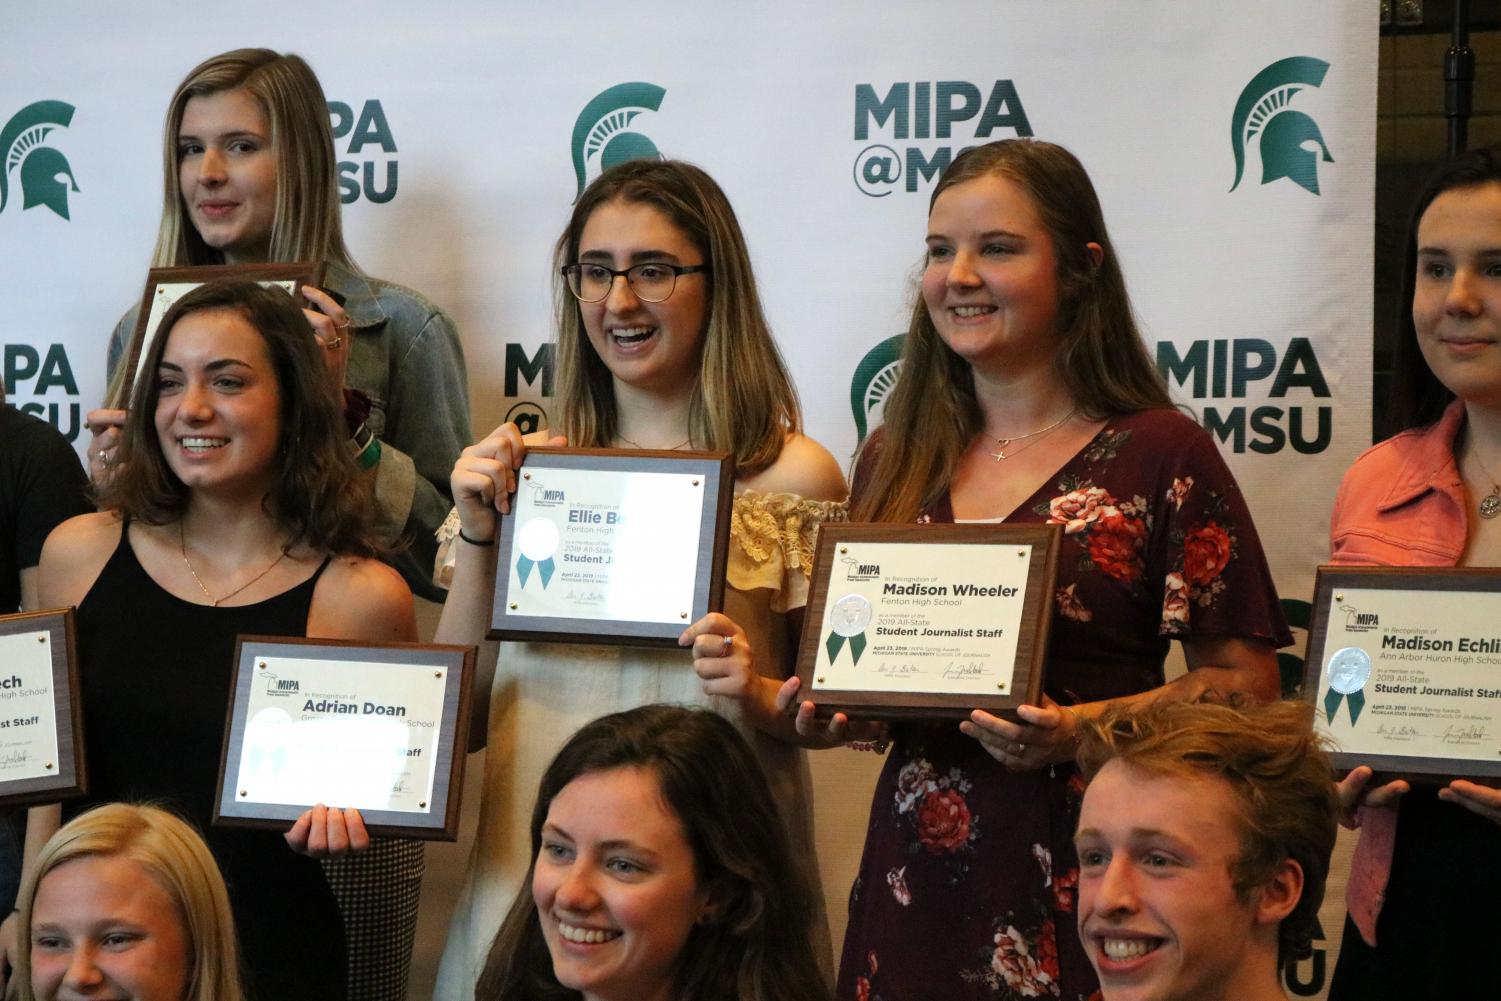 Seniors Ellie Bennett and Madison Wheeler pose for a group photo of MIPA awards winners. On April 23, yearbook and newspaper staff members went to the annual MIPA awards ceremony to celebrate their accomplishments.